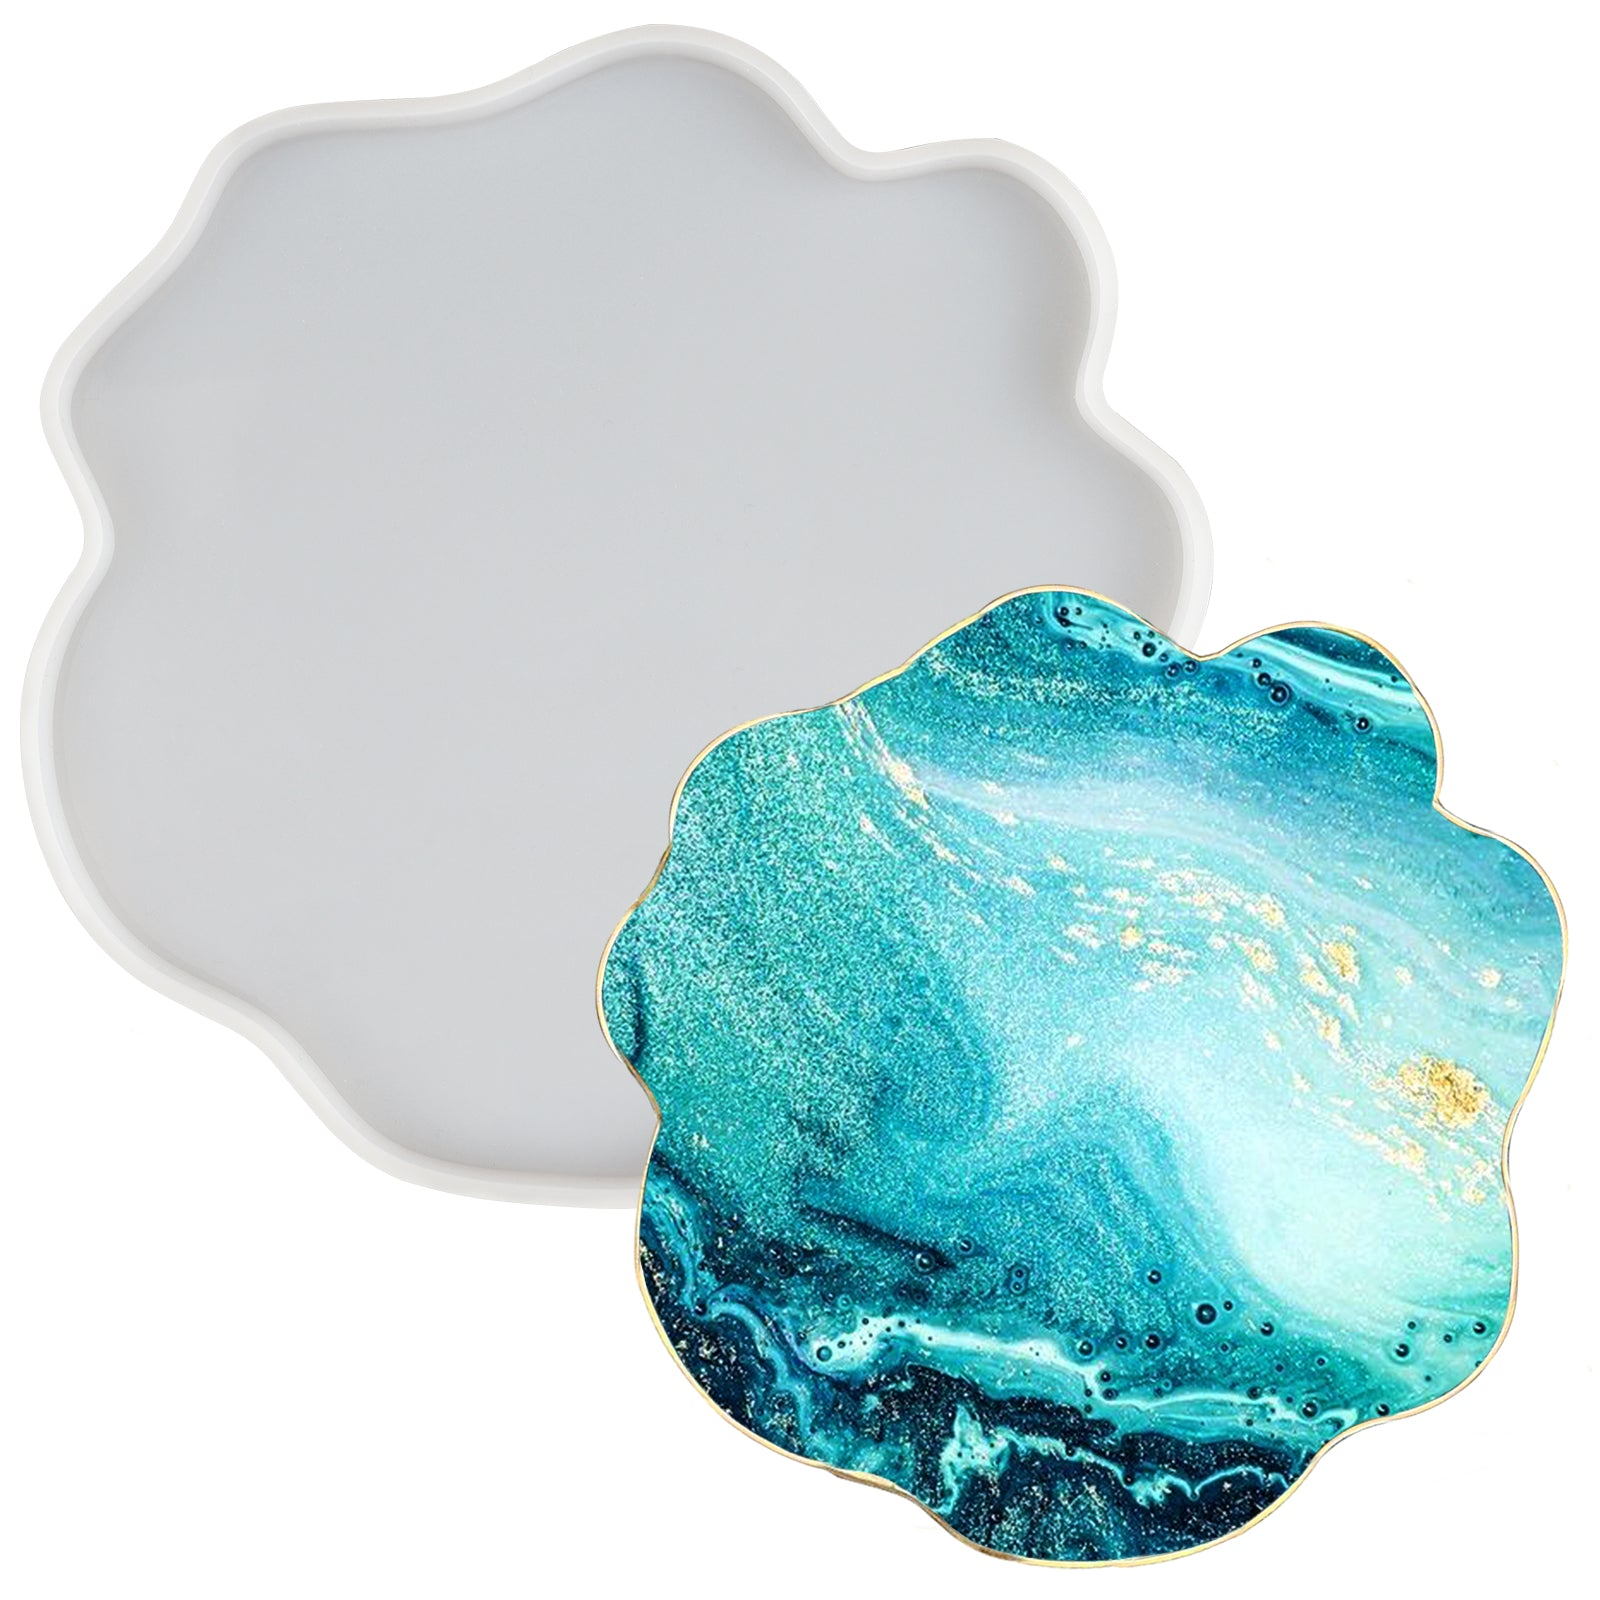 Geode Agate Coaster Epoxy Resin Silicone Molds Set Jewelry Casting Polymer Clay Craft Soap Concrete Cement Extra Large 7.9x6.9inch